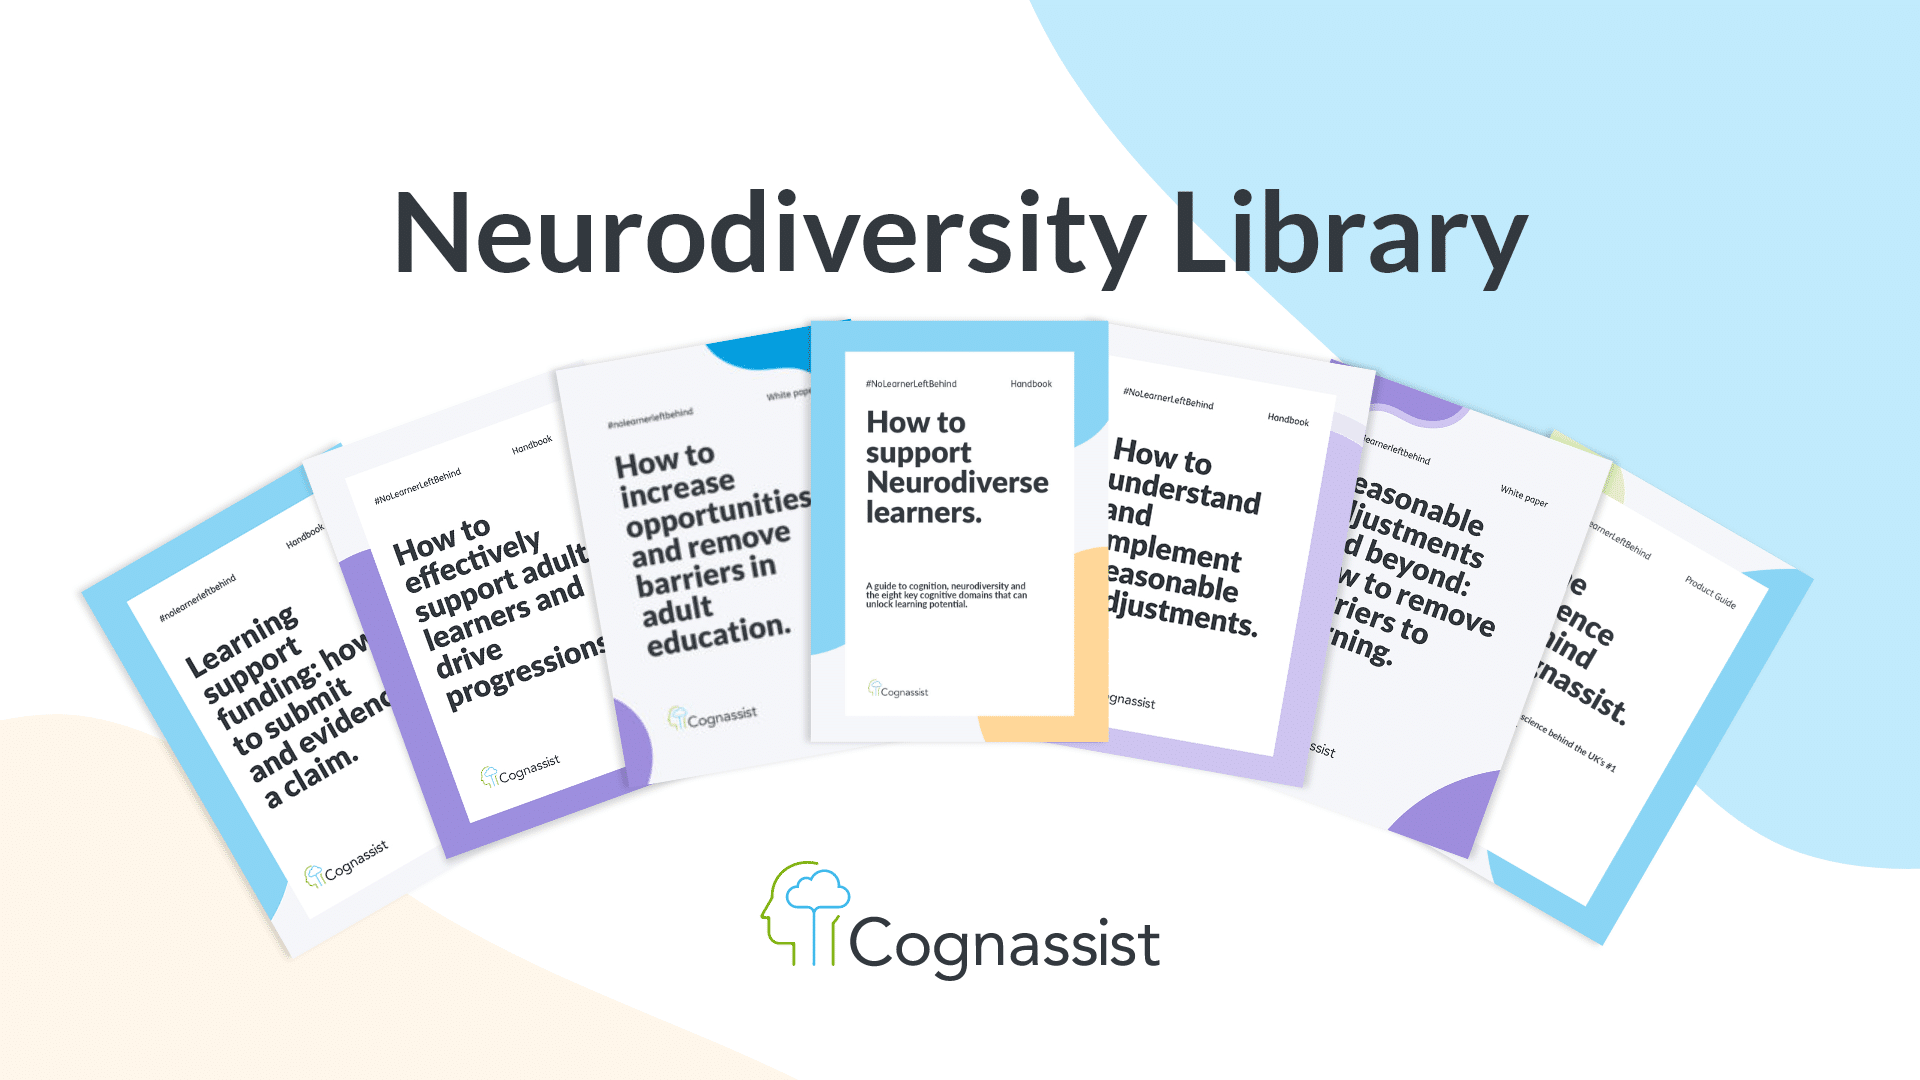 Neurodiversity library